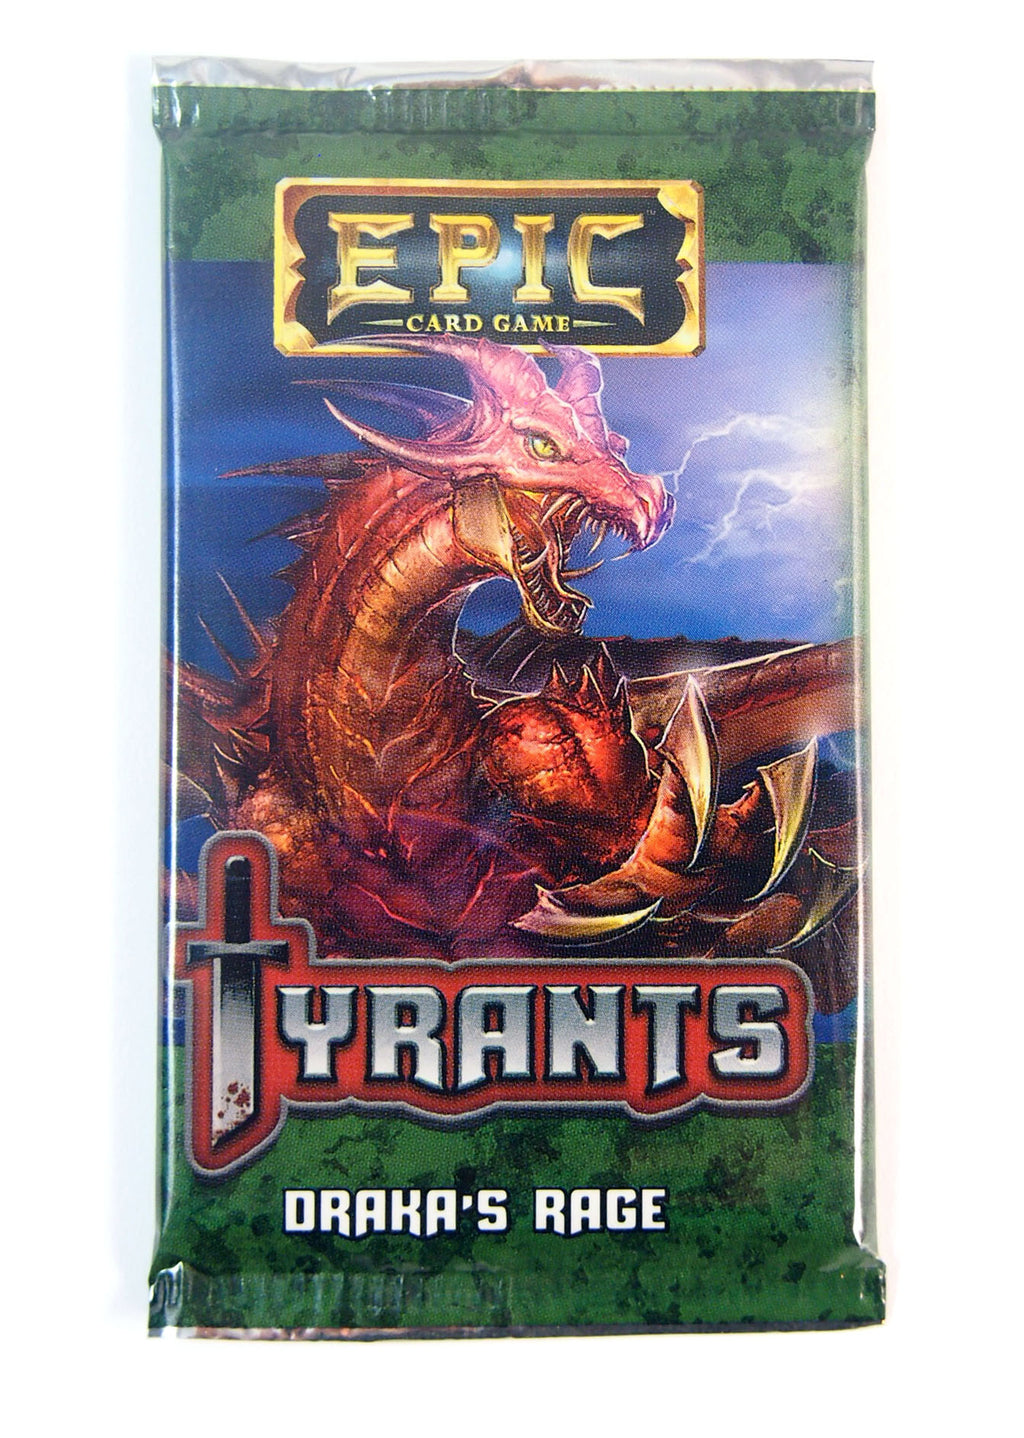 Epic Card game Tyrants, Draka's Rage Expansion